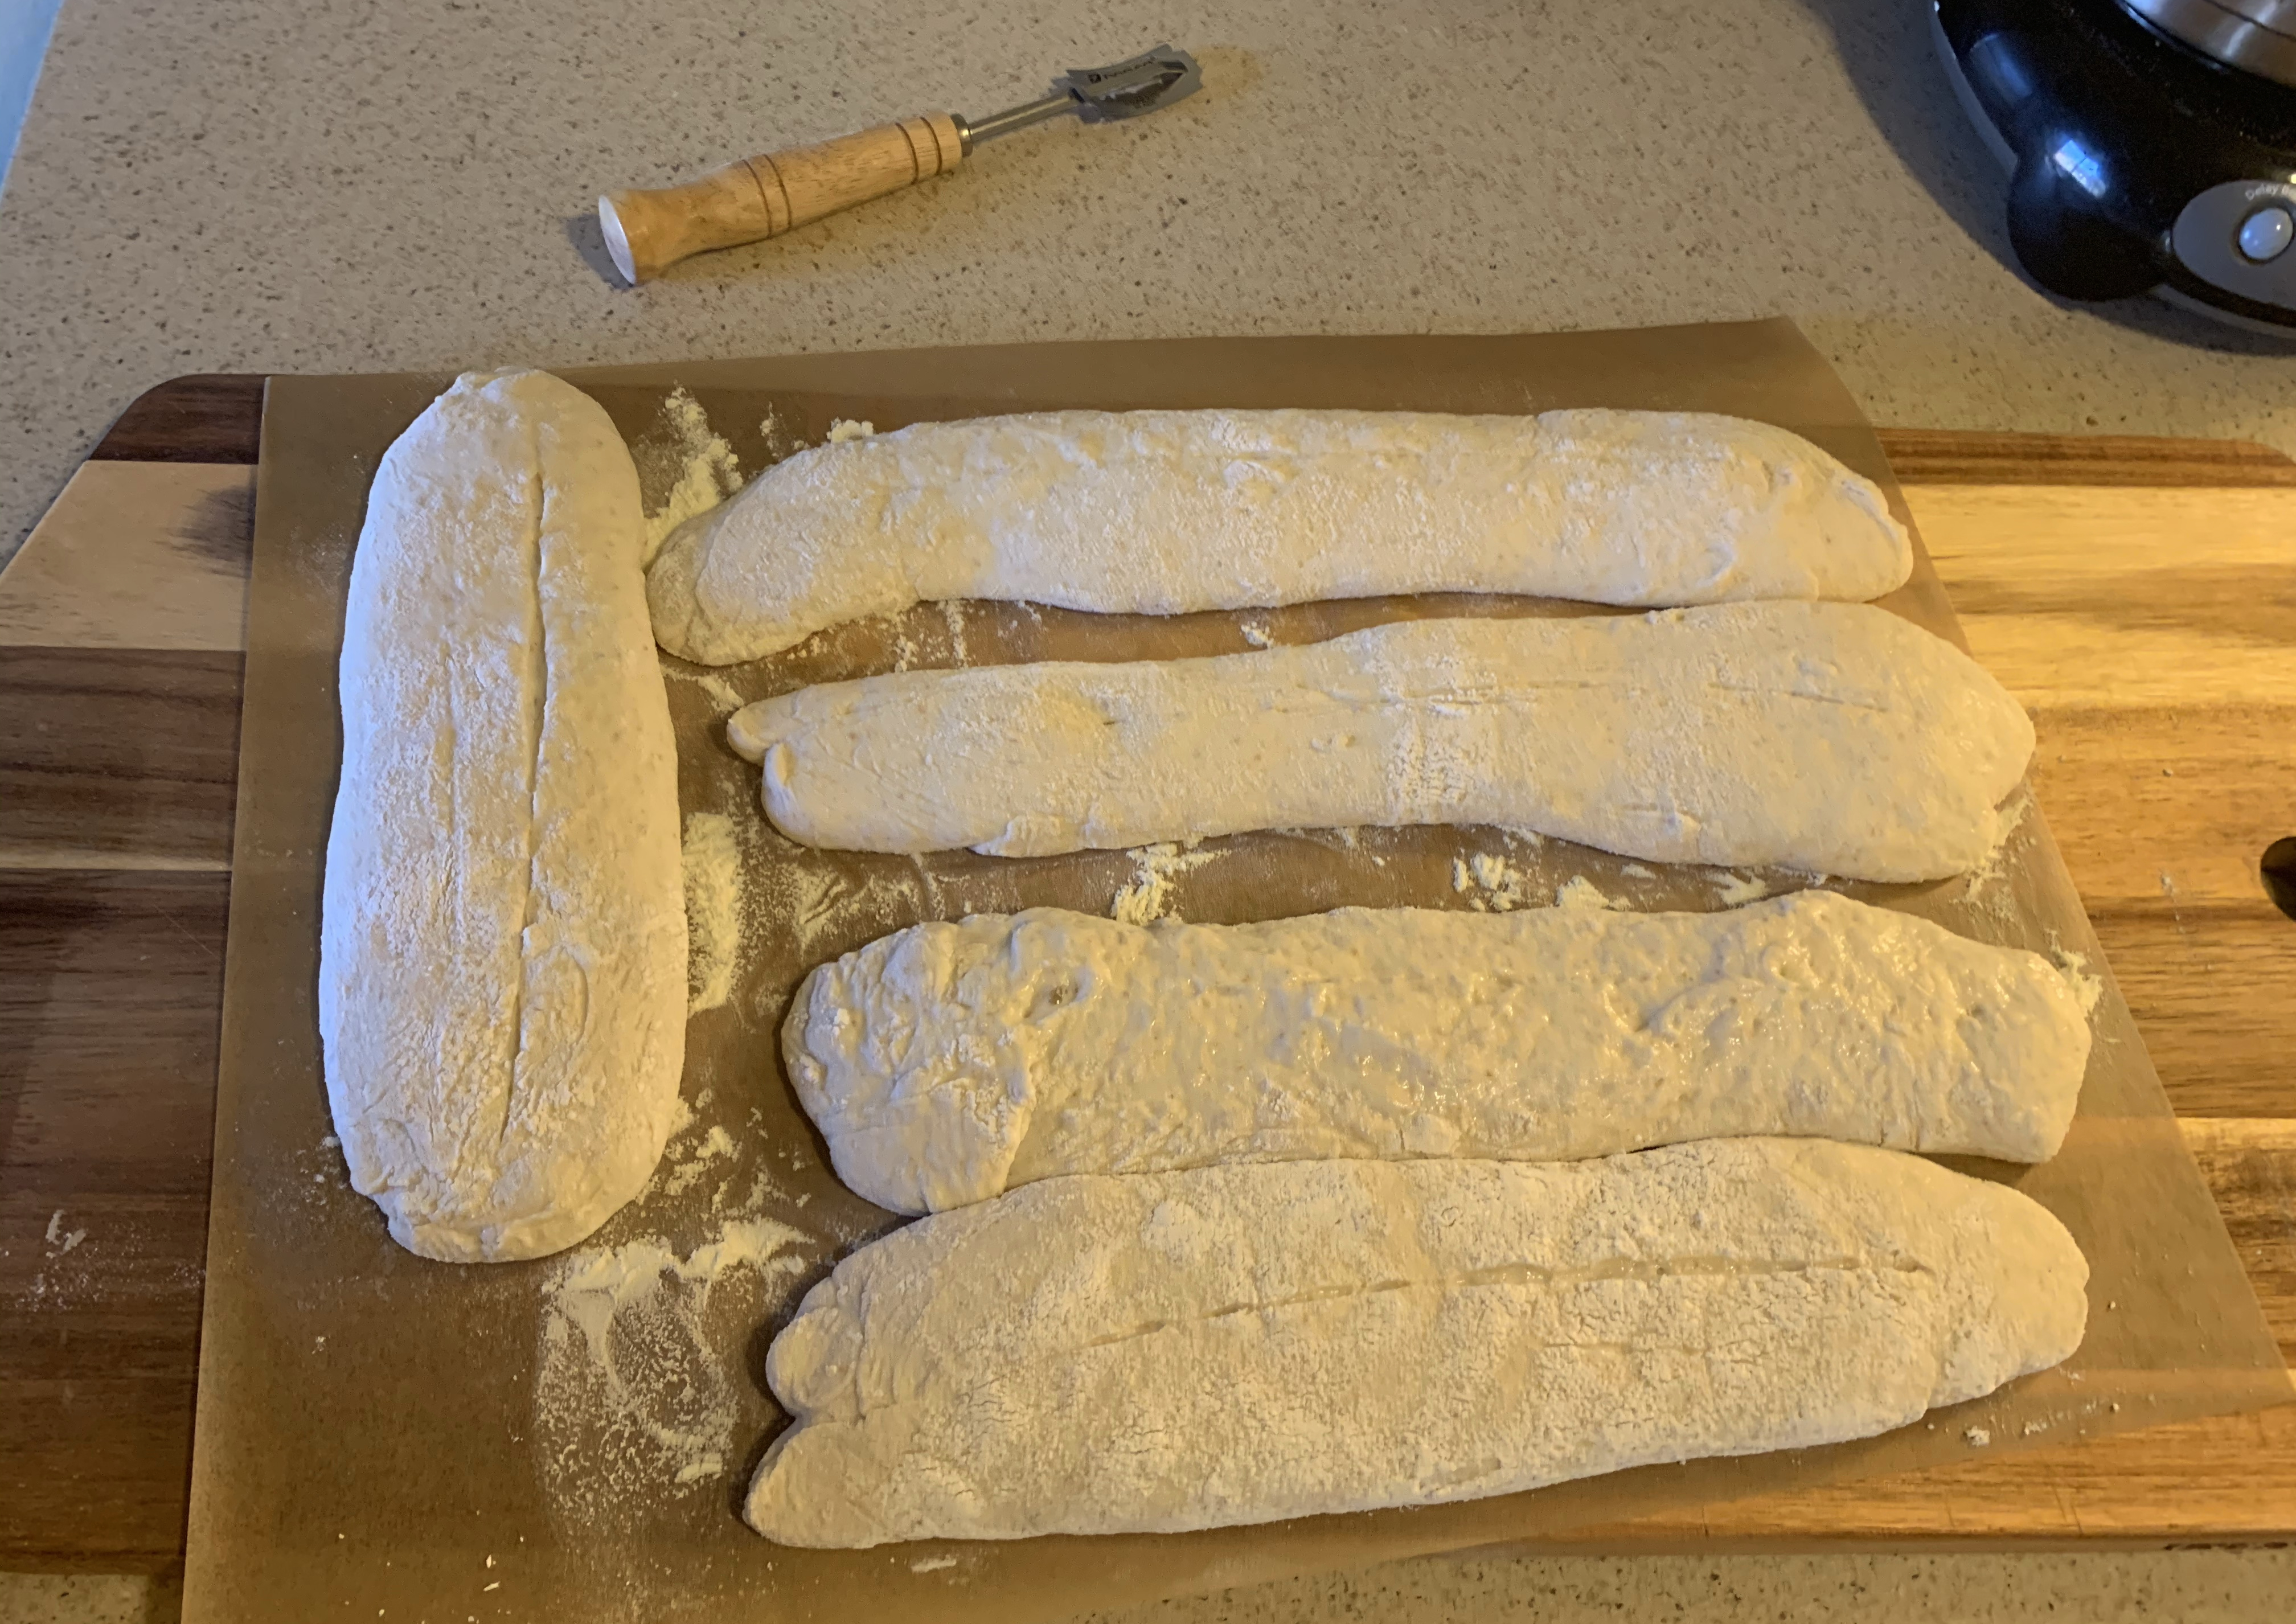 Five loaves of unbaked birote dough on a cutting board. They have been scored and the lame is on the counter near them.